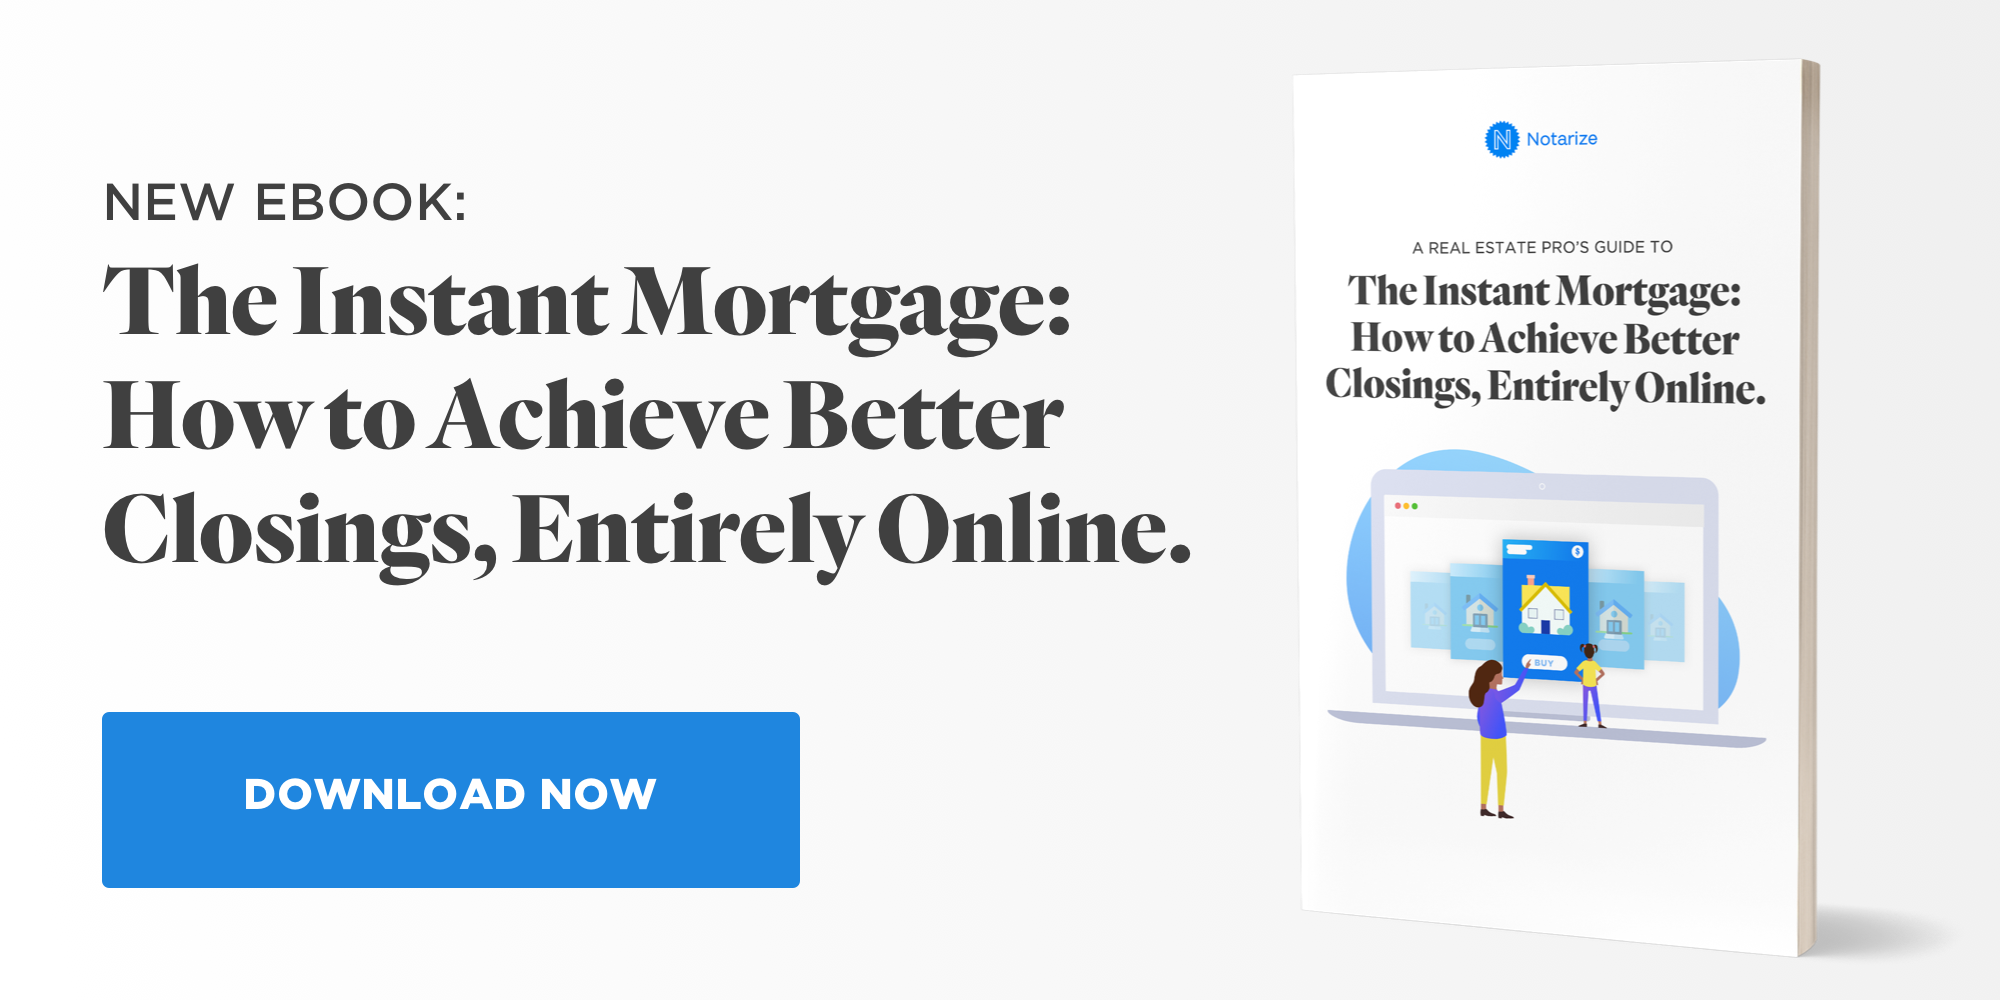 New eBook on The Instant Mortgage: How to Achieve Better Closings, Entirely Online